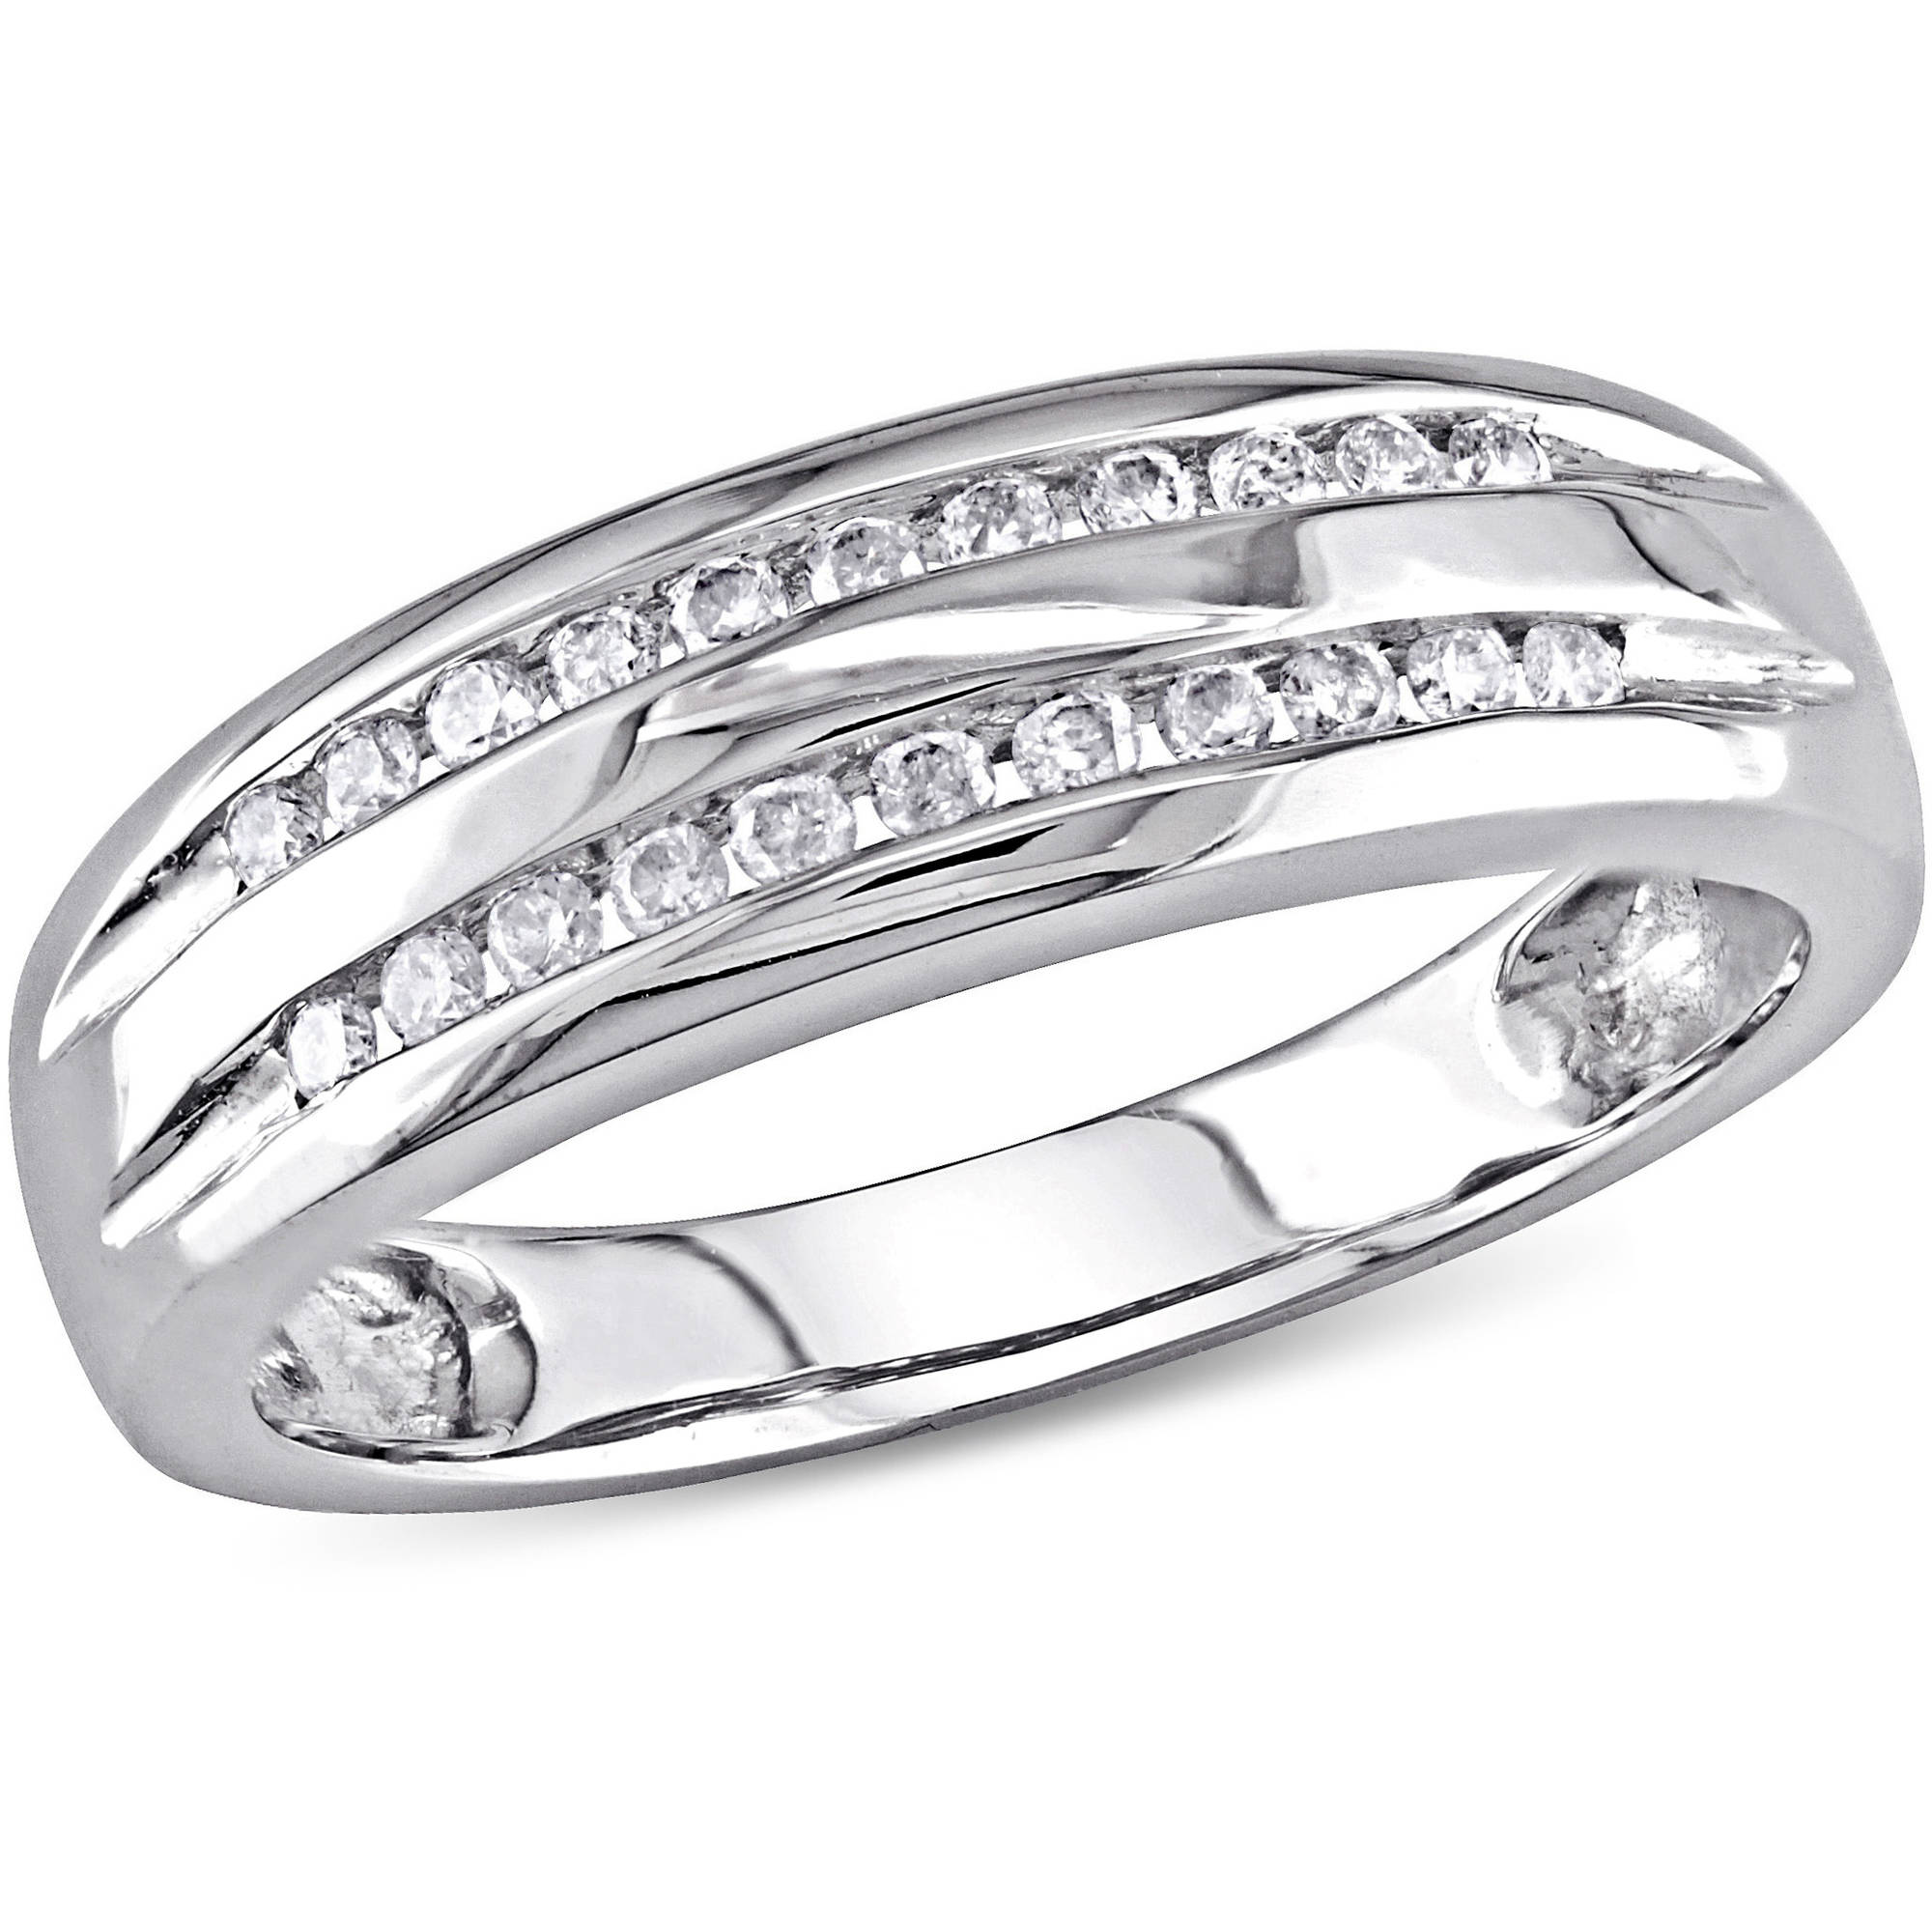 Miabella 1/6 Carat T.W. Double-Row Diamond 10kt White Gold Wedding Band